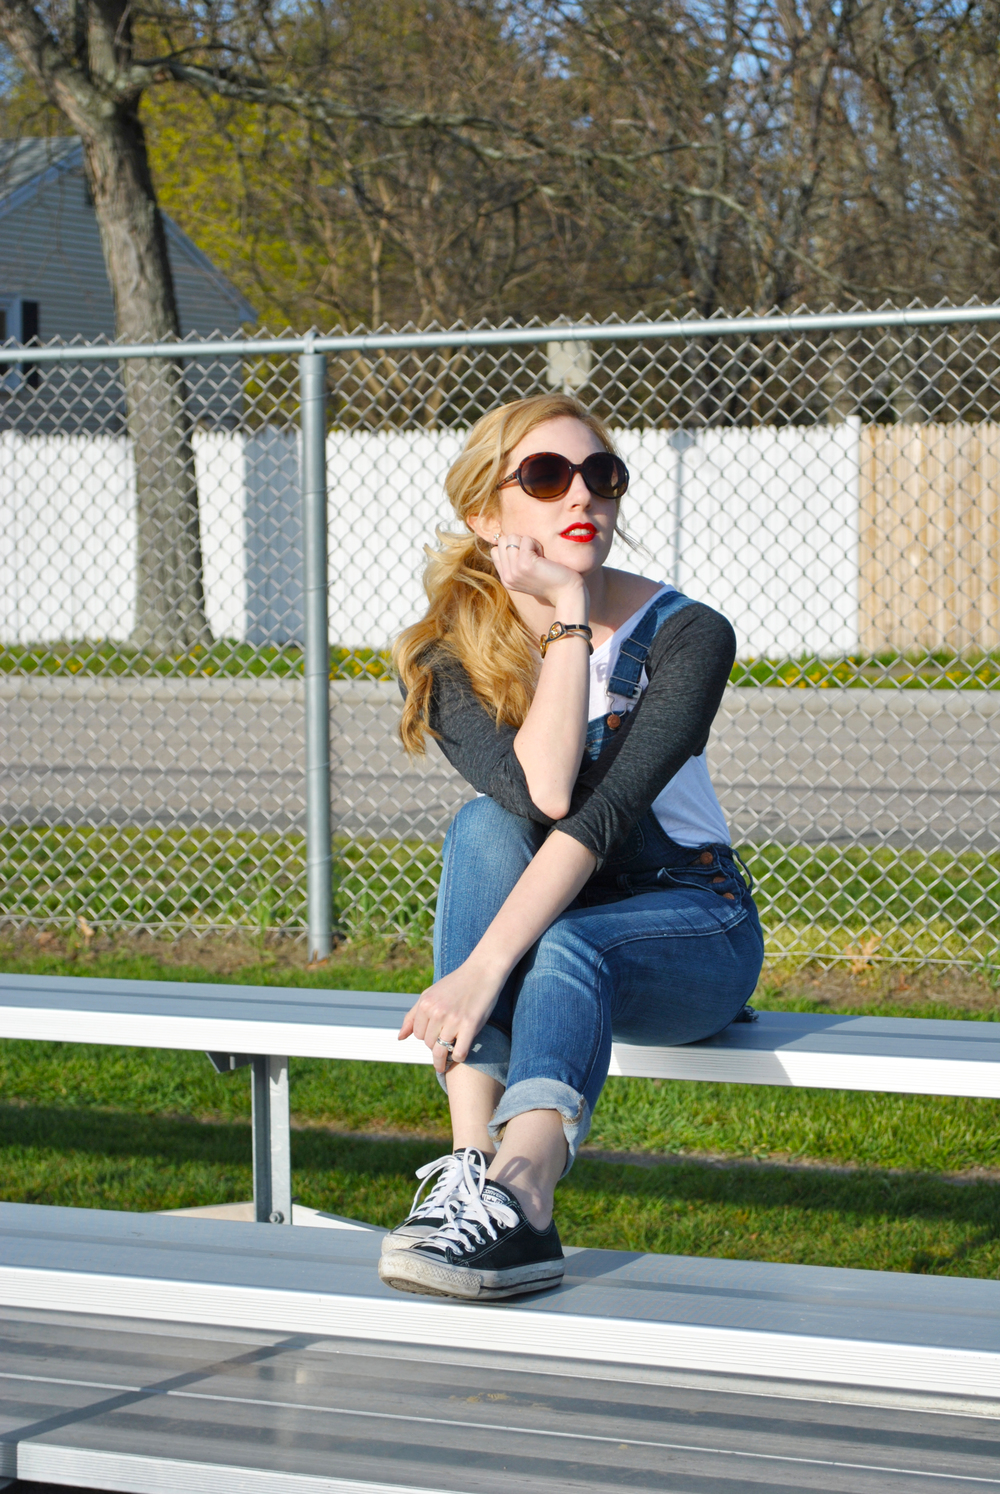 thoughtfulwish | baseball fashion // fashion blogger // boston // boston blogger // baseball tee // overalls // madewell // kate spade // summer // ootd // meredith wish